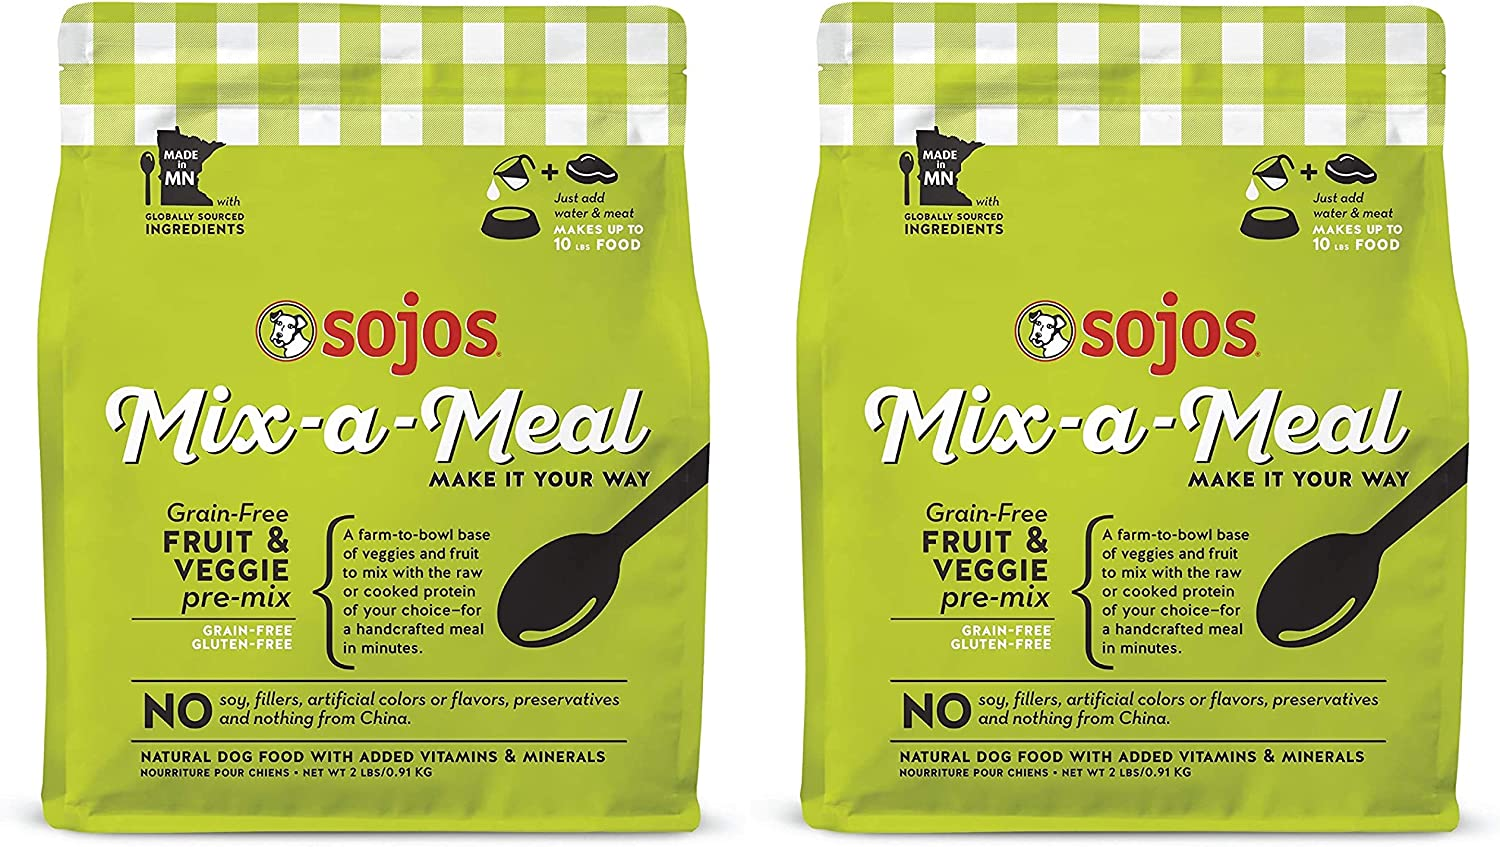 SOJOS 2 Pack of Mix-a-Meal Grain-Free Fruit and Veggie Recipe Pre-Mix Natural Dehydrated Dog Food, 2 Pounds Each